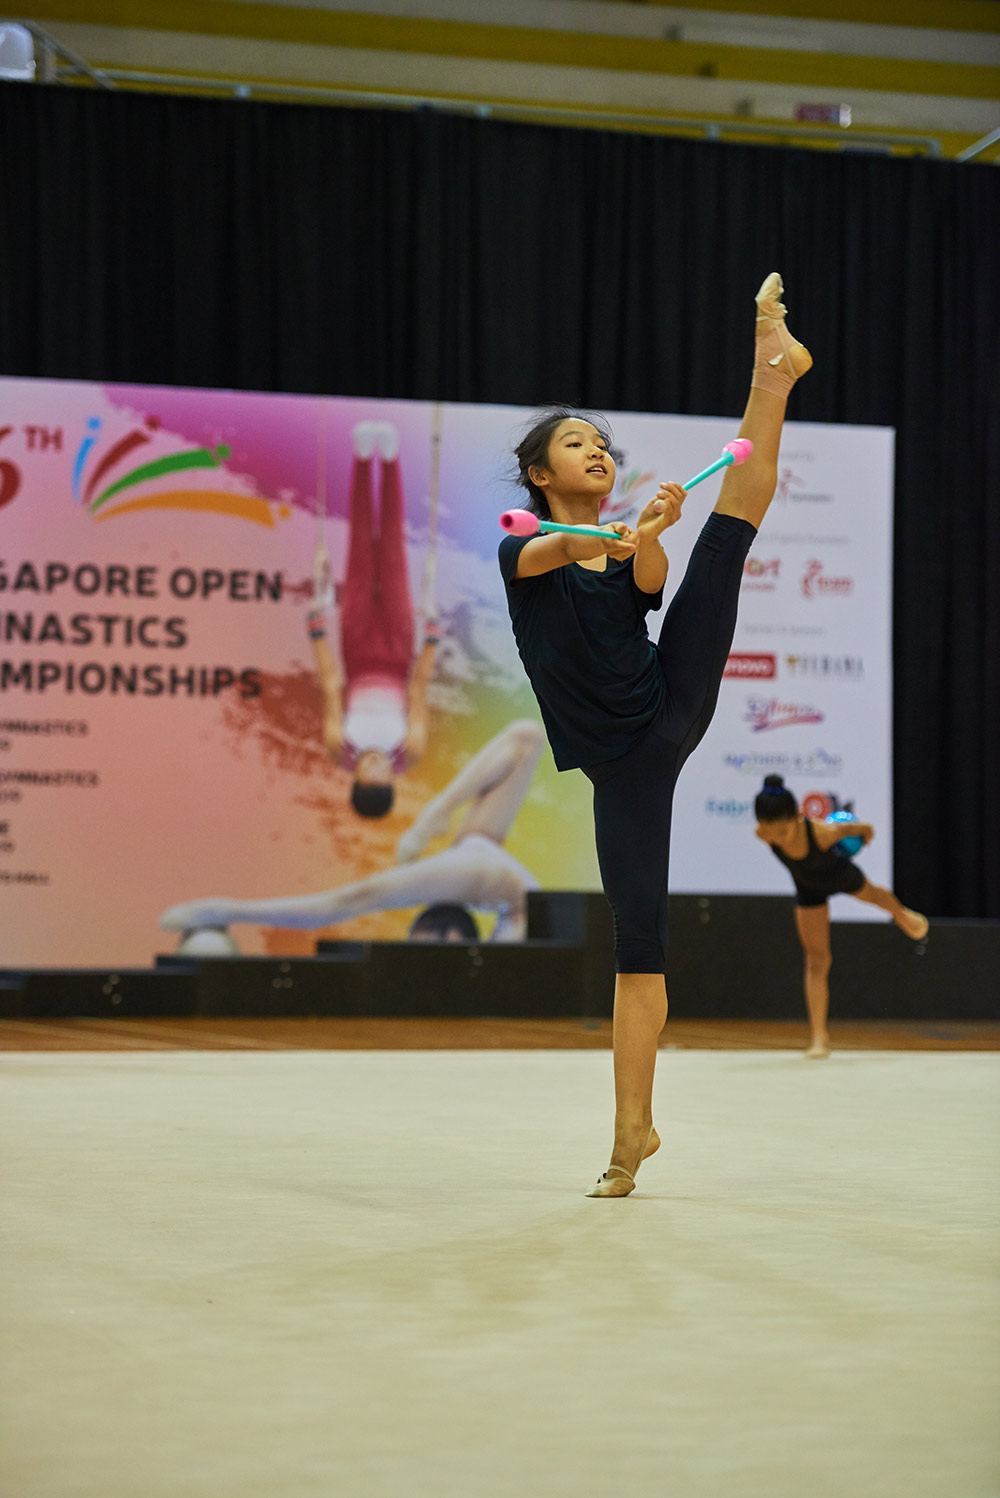 Podium Training for SG Open Championships 2019 29